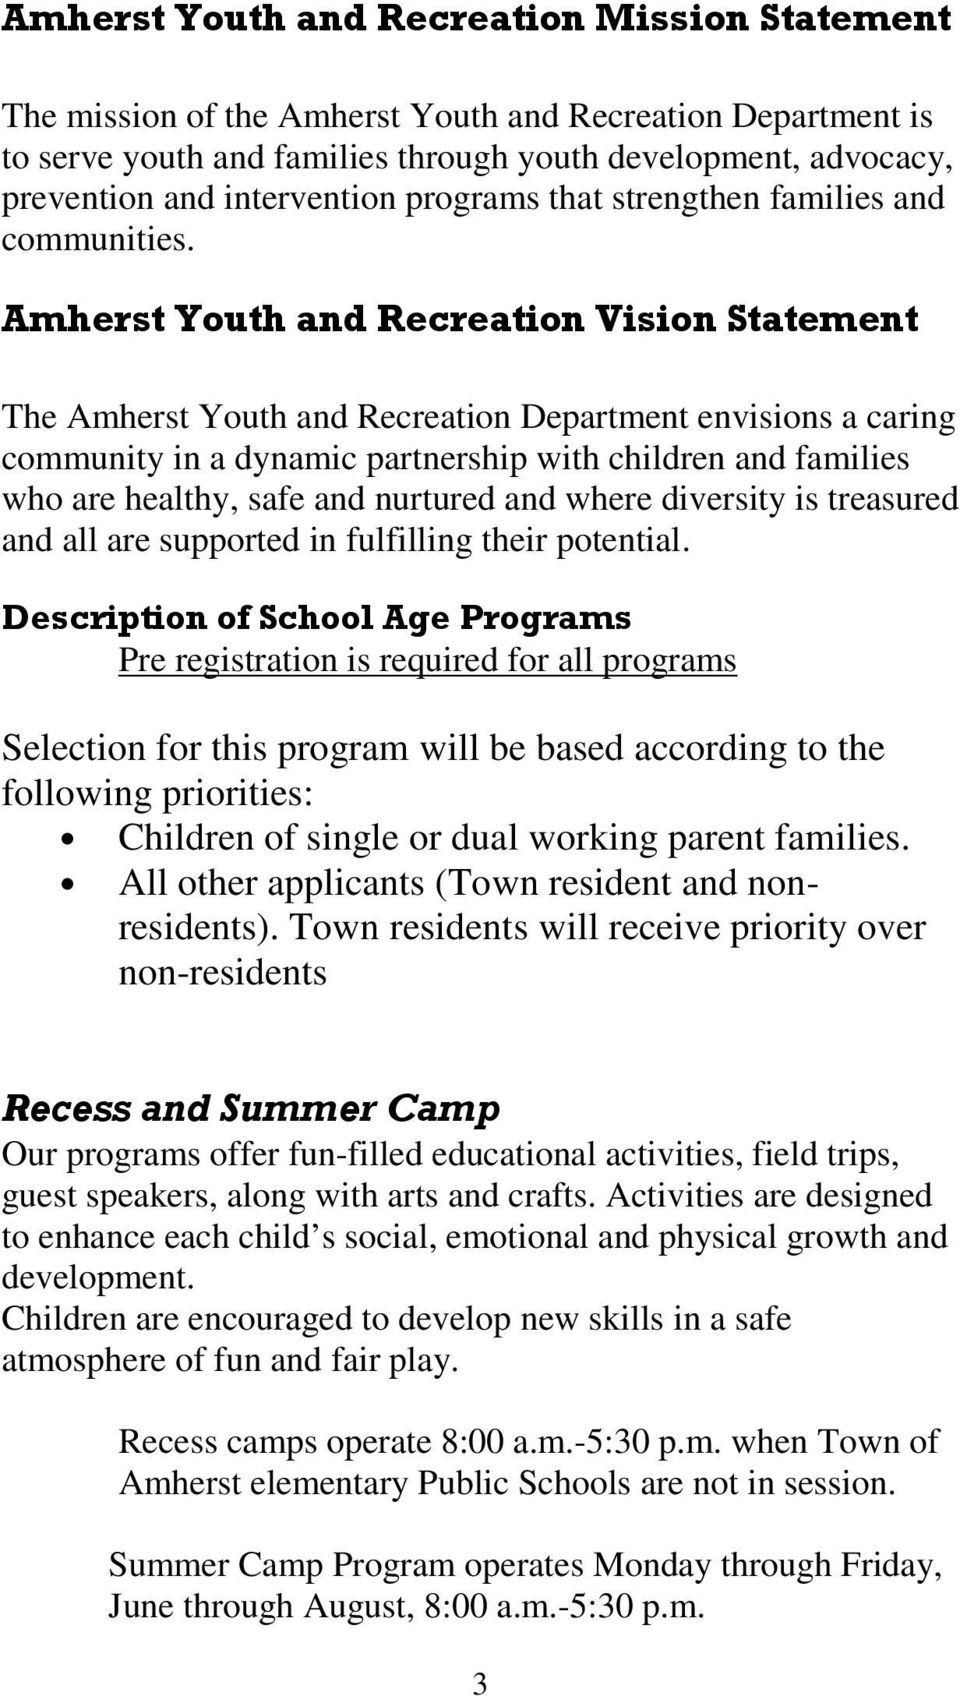 Amherst Youth and Recreation Vision Statement The Amherst Youth and Recreation Department envisions a caring community in a dynamic partnership with children and families who are healthy, safe and